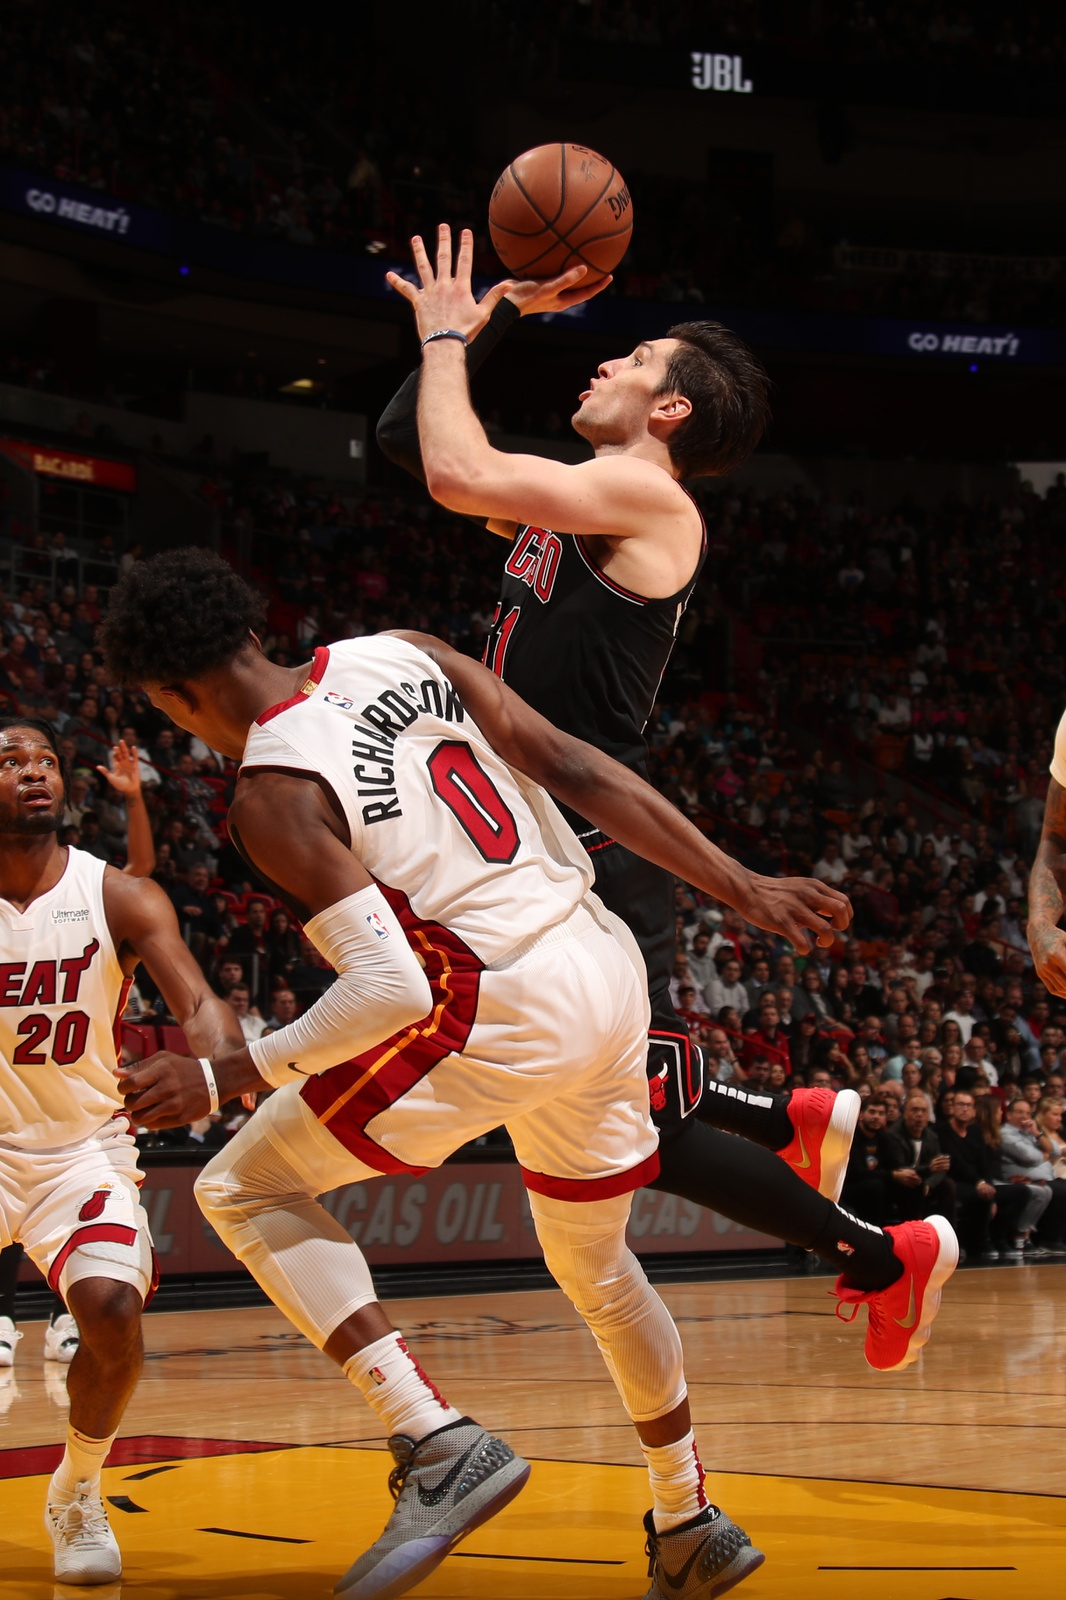 Ryan Arcidiacono #51 of the Chicago Bulls shoots the ball against the Miami Heat on January 30, 2019 at American Airlines Arena in Miami, Florida.